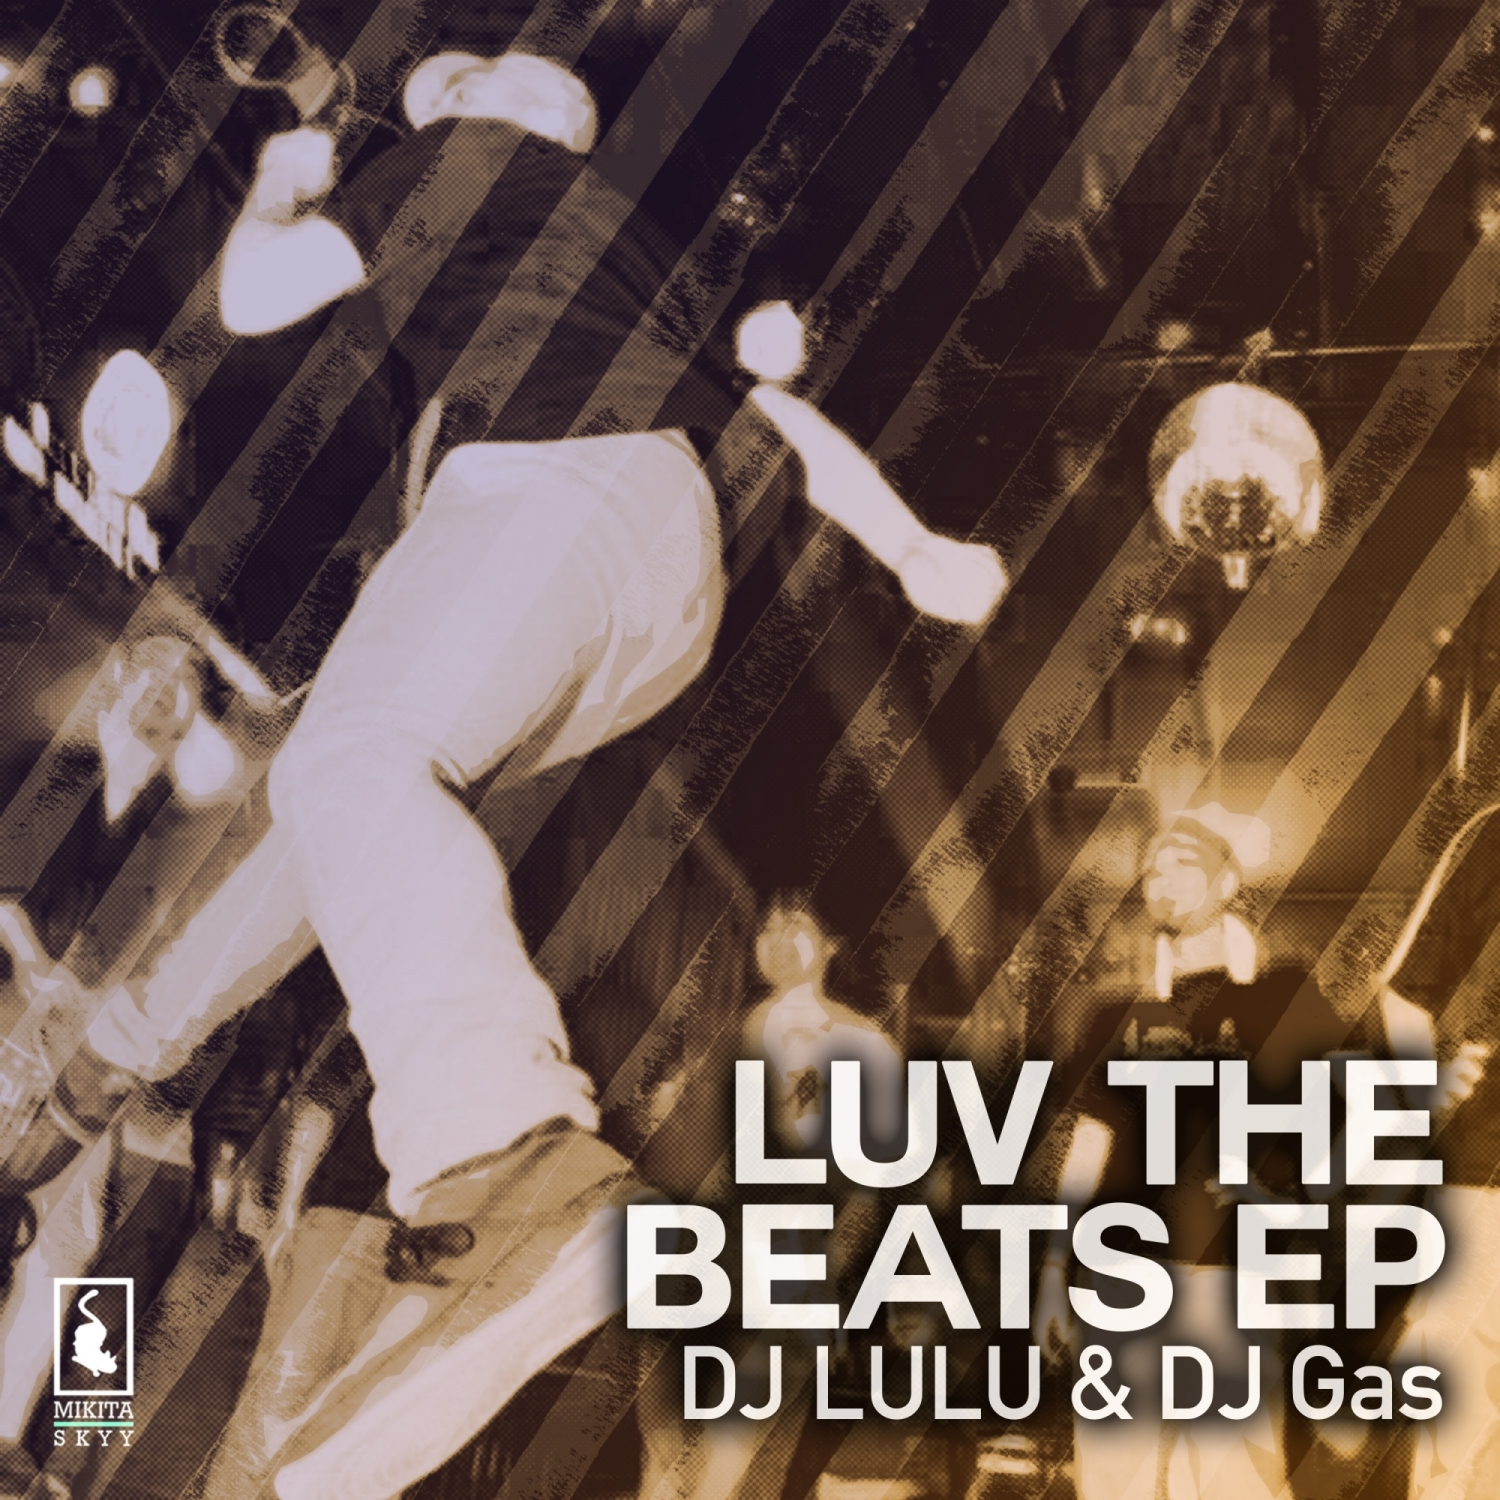 DJ LULU & DJ Gas - Just For U  (Original Mix)